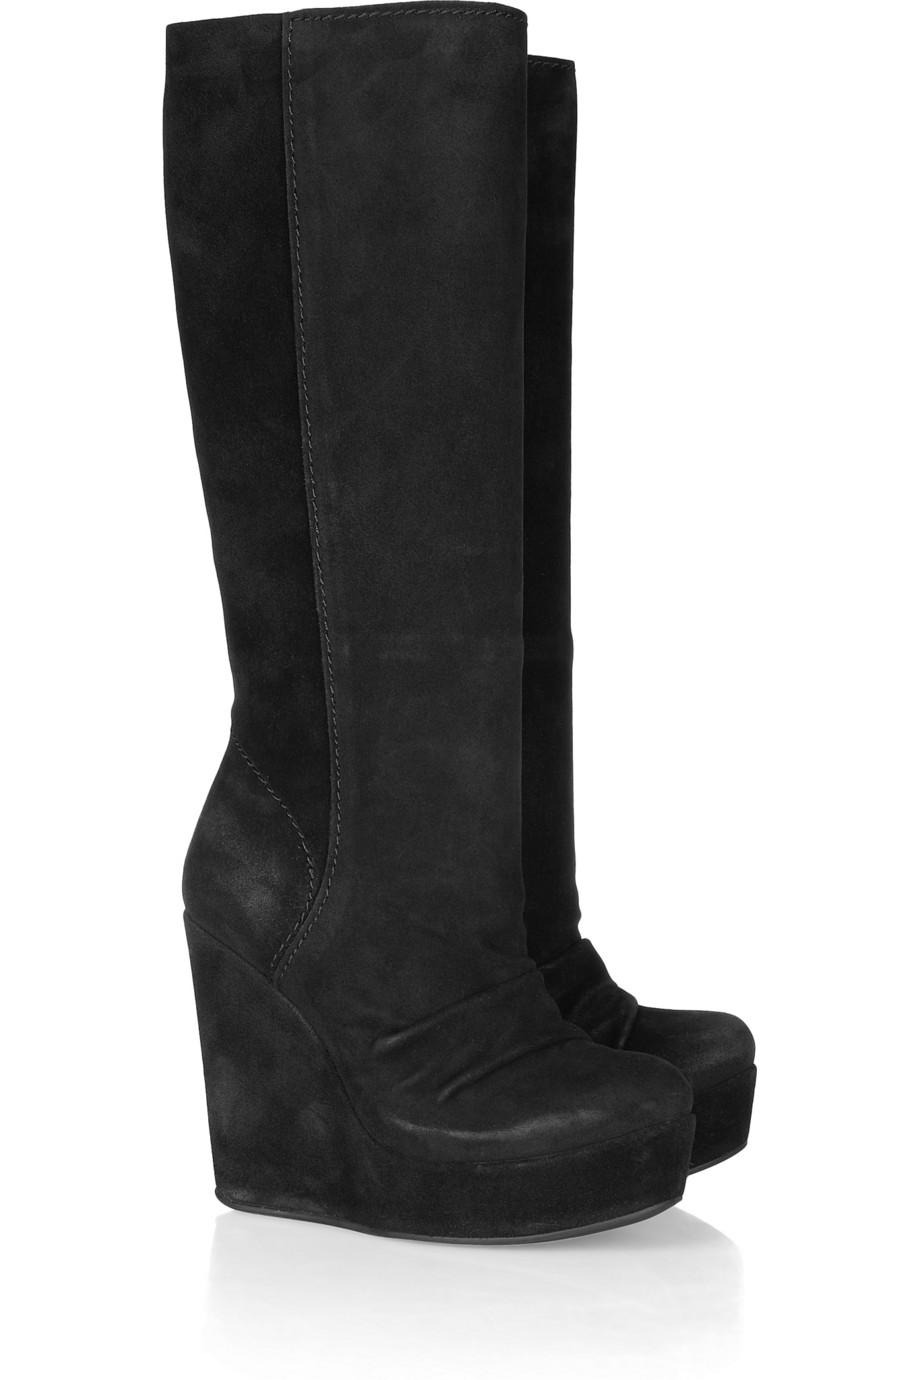 leather wedge boots for women | Gommap Blog